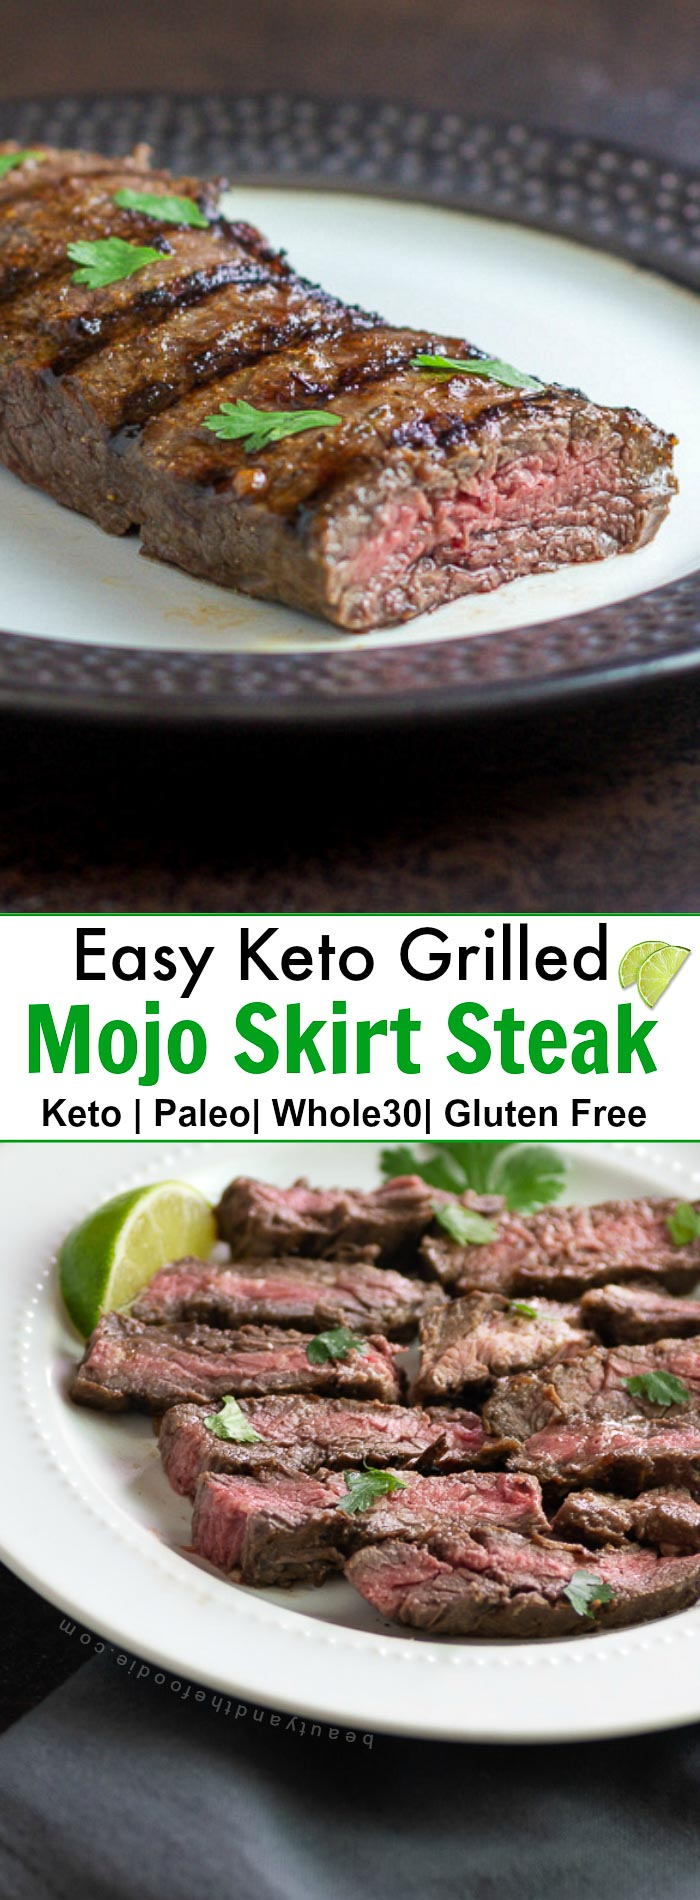 Easy Keto Grilled Mojo Skirt Steak- Low Carb, Paleo , Whole30